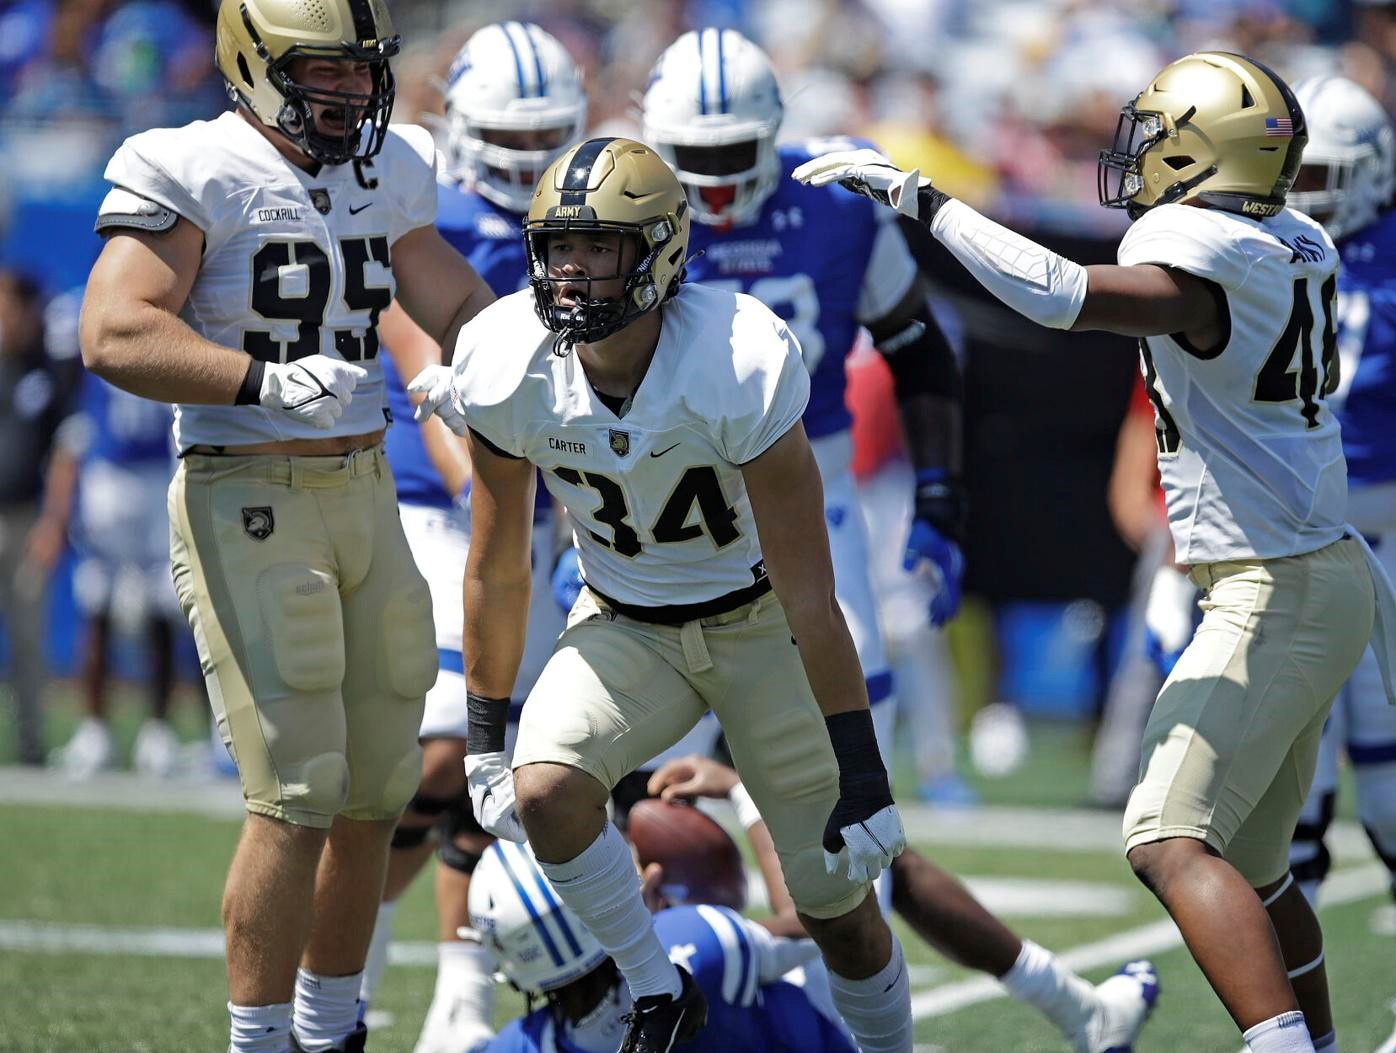 Army recruiting benefits from upside of 6-7 Andre Carter II